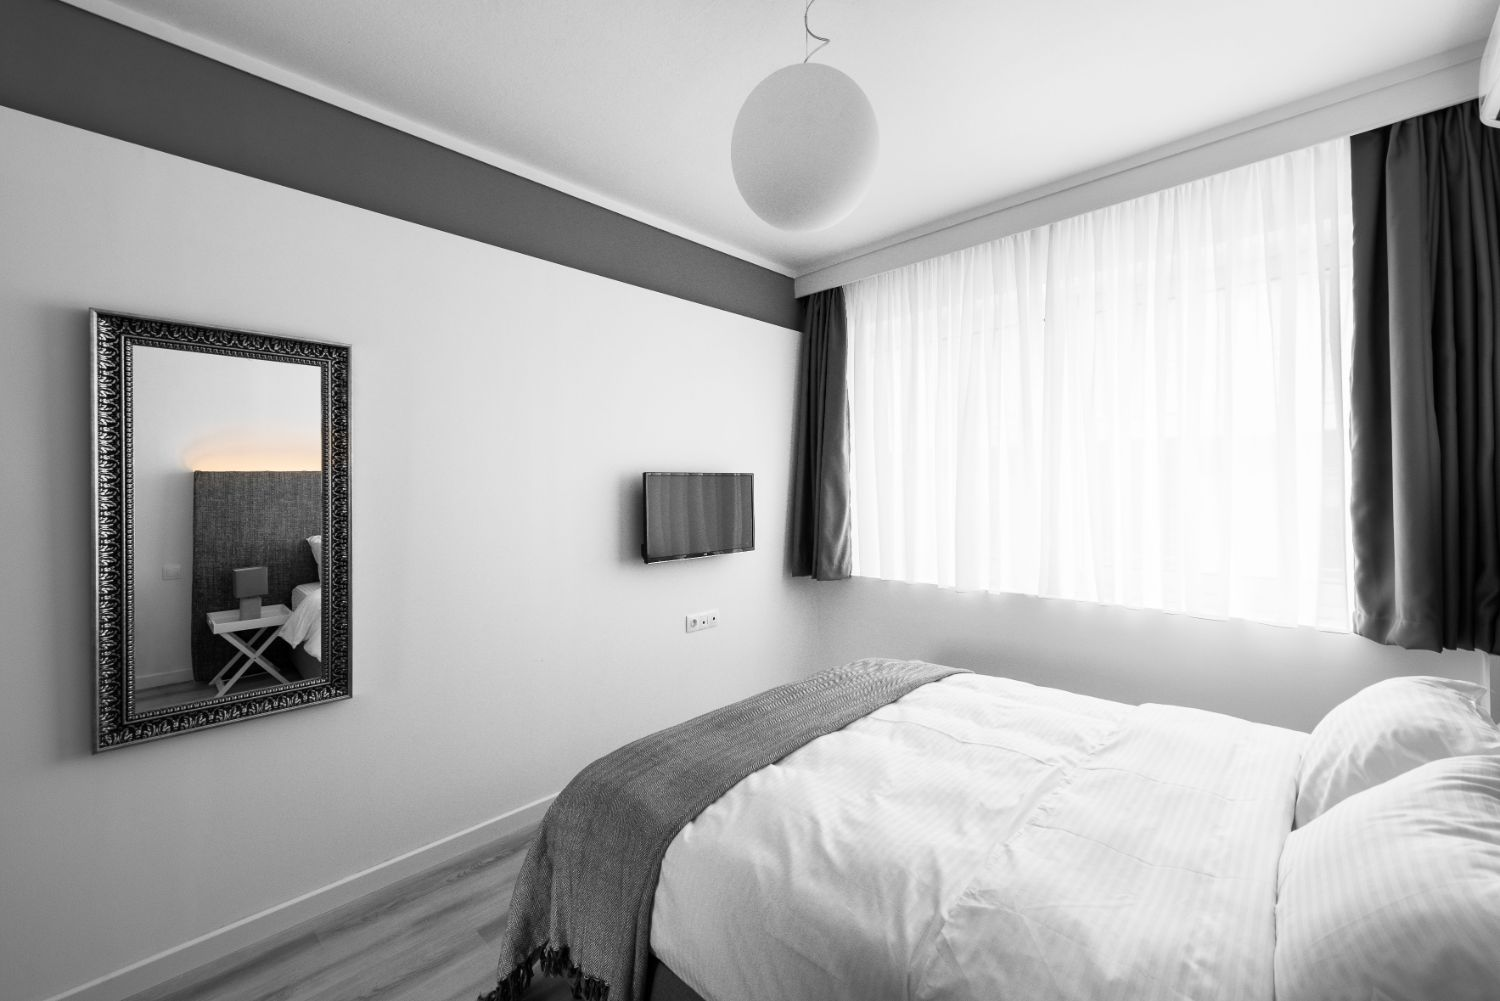 Suite #2, Bedroom area with 1 double bed and TV